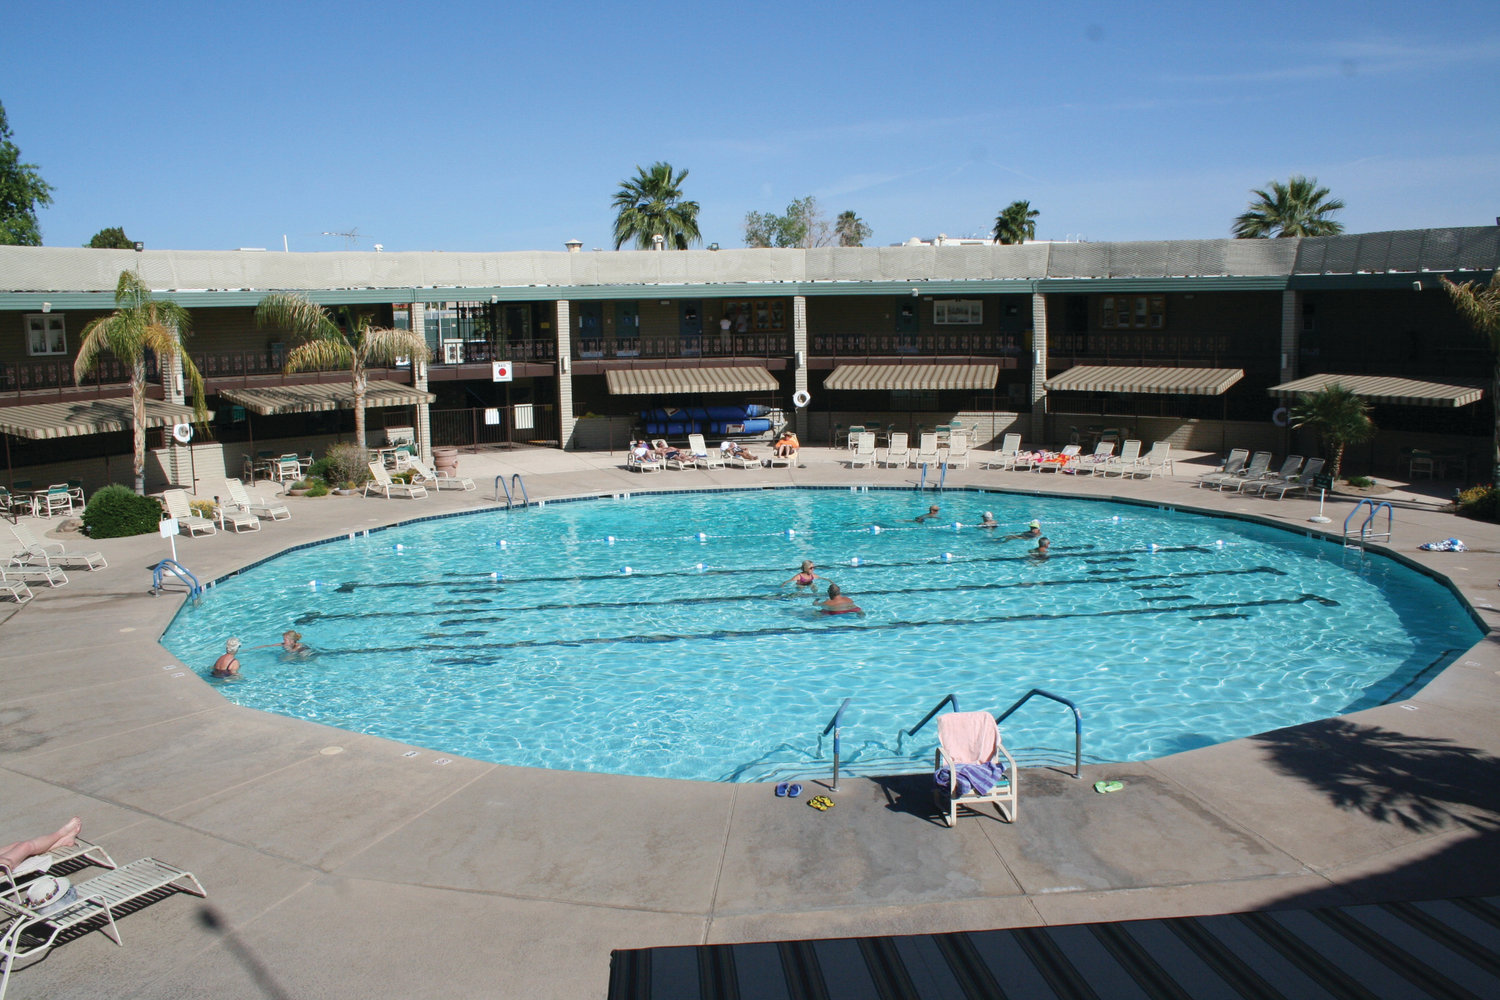 Rcsc Will Not Reopen Pools Spas And Fitness Centers In Sun City